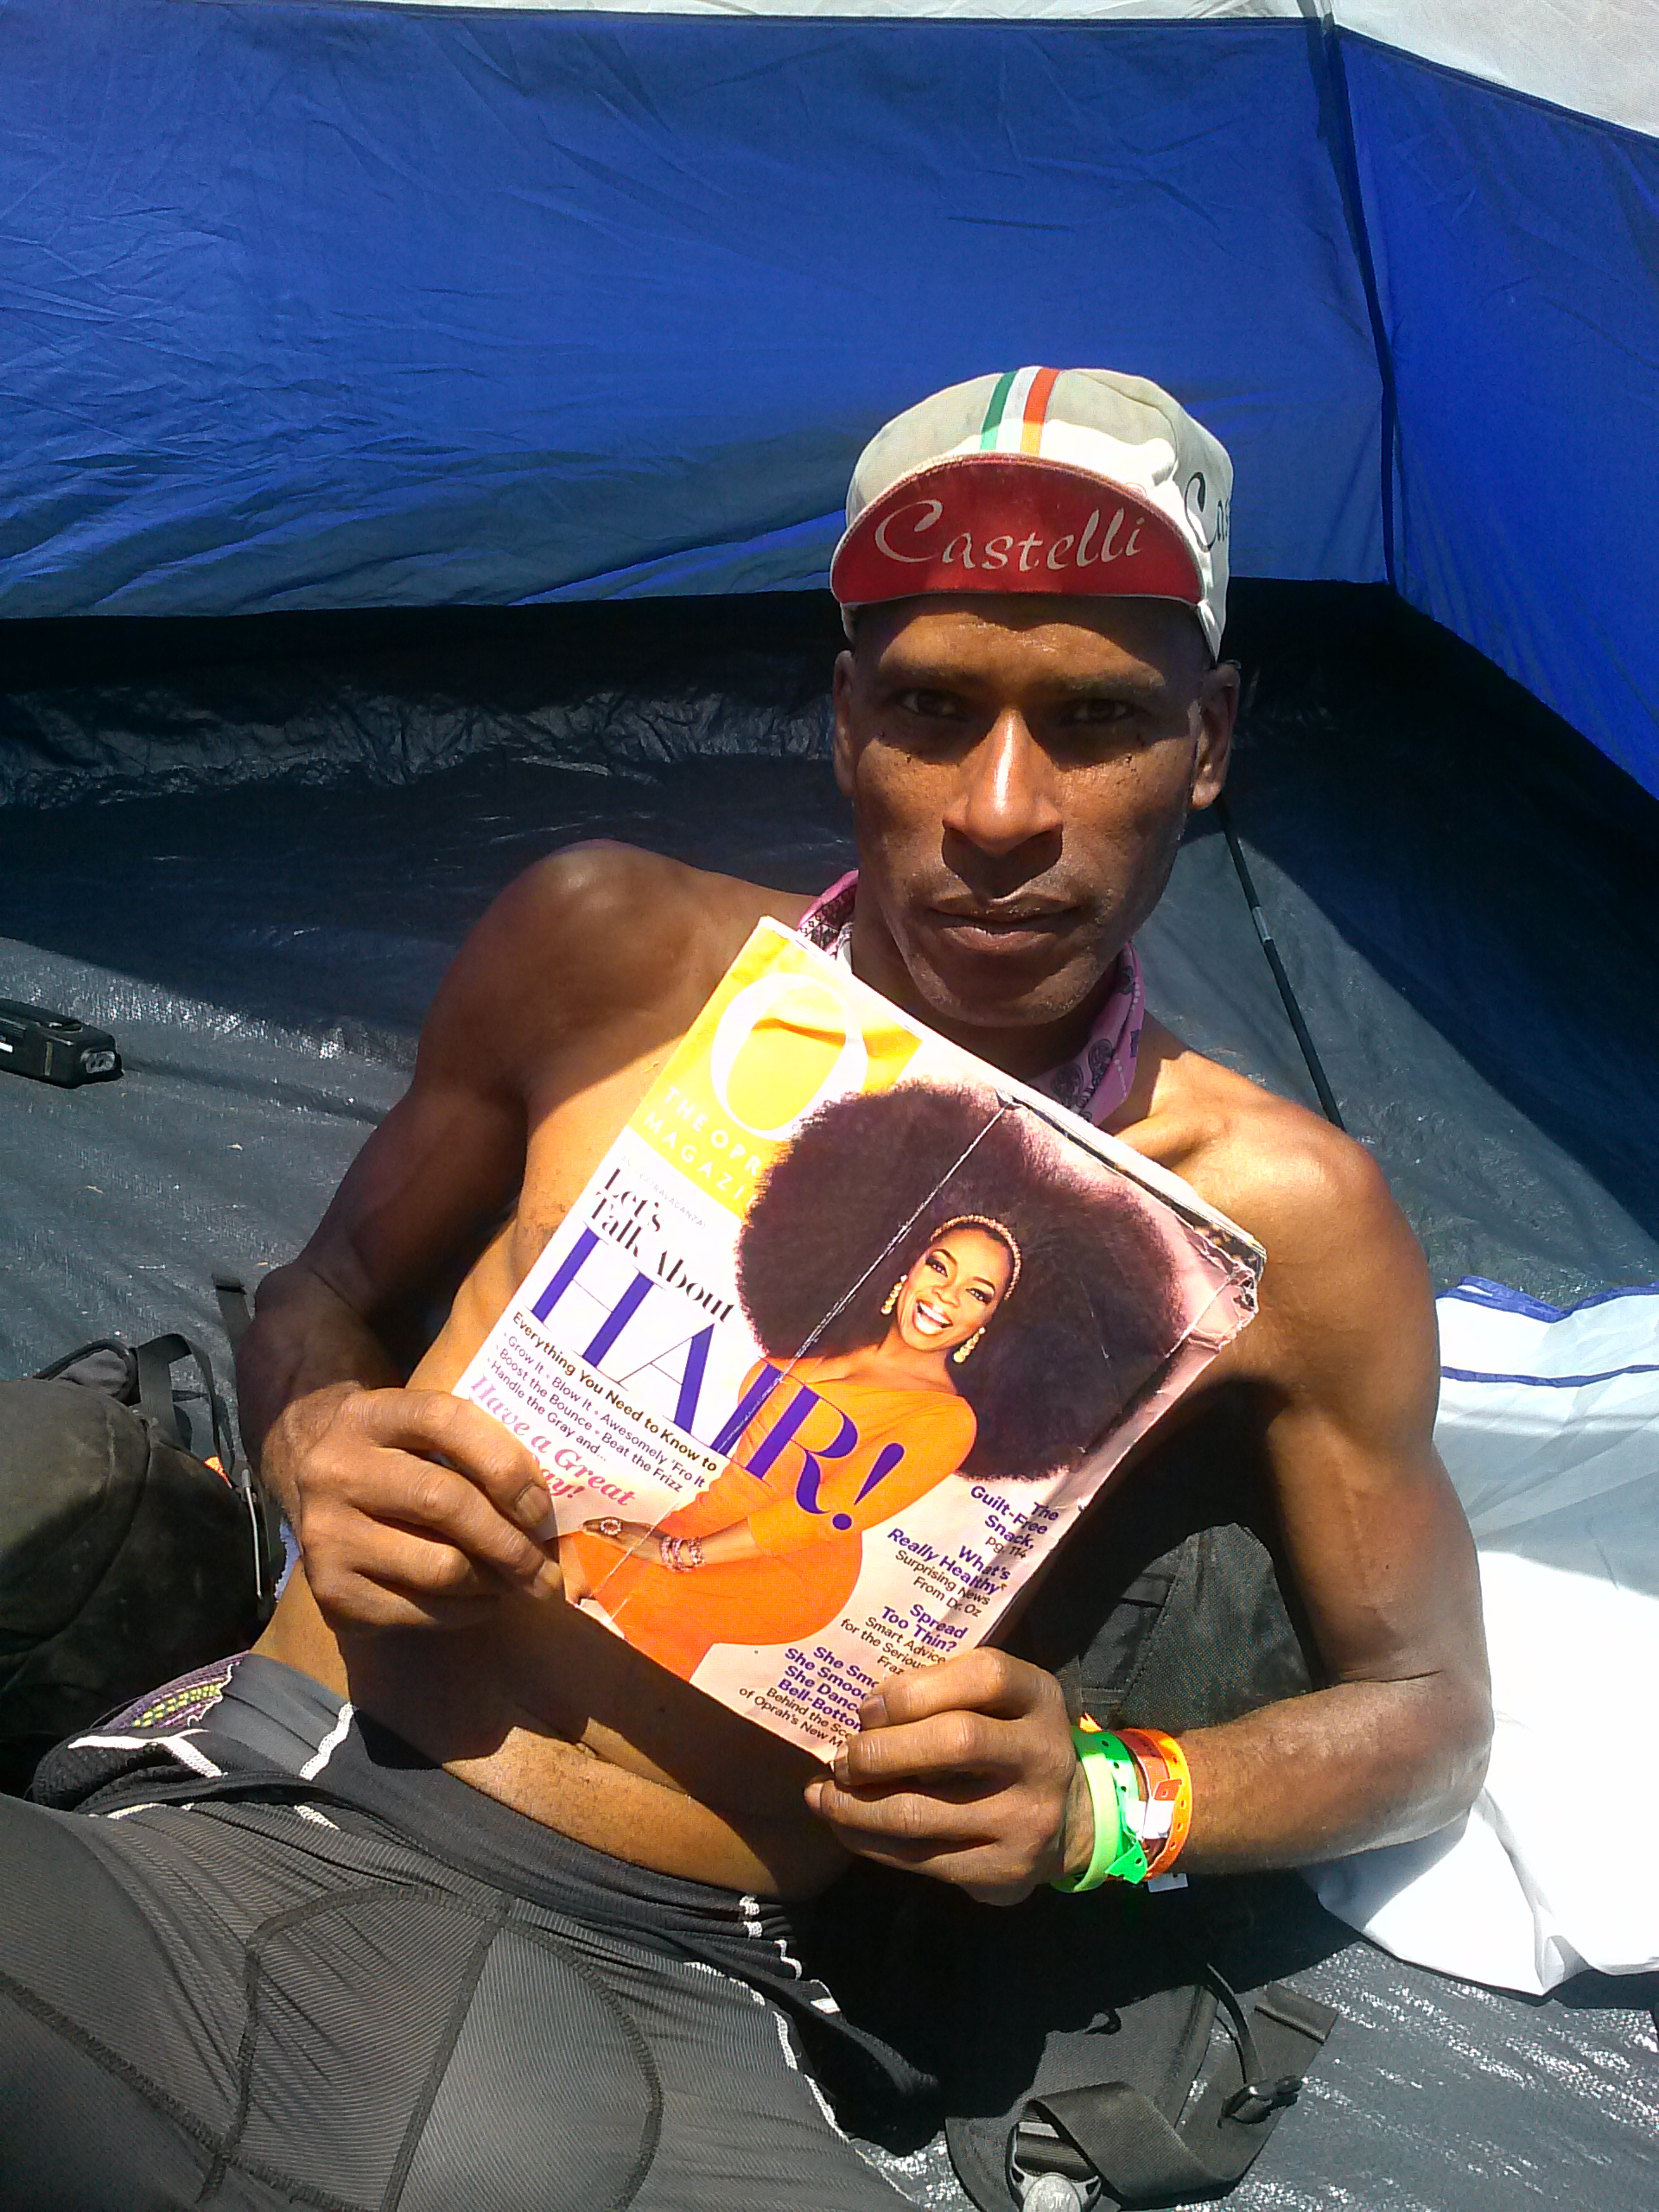 AIDS/Lifecycle Cyclist holding an O Magazine